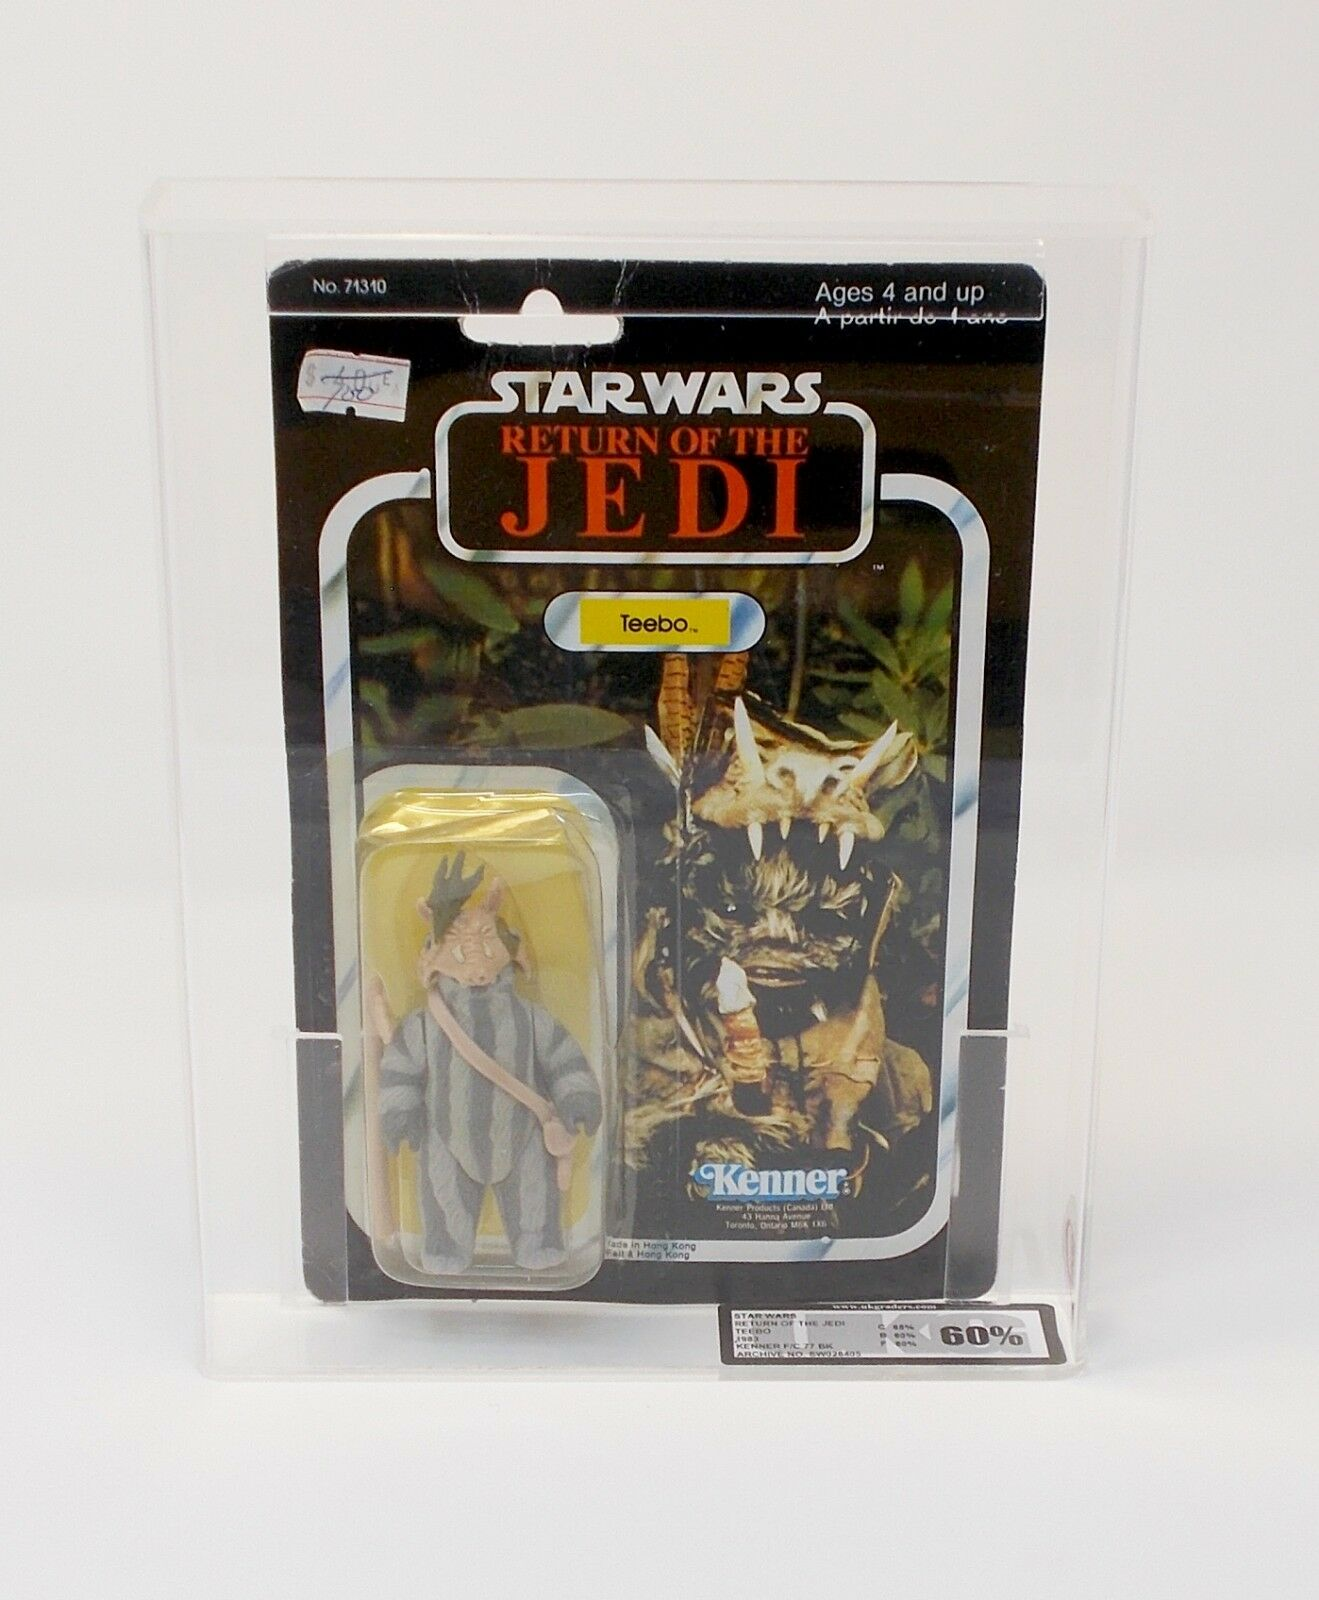 Vintage Star Wars Teebo UKG 60 Canadian Card Rare ROTJ Sealed in protective case